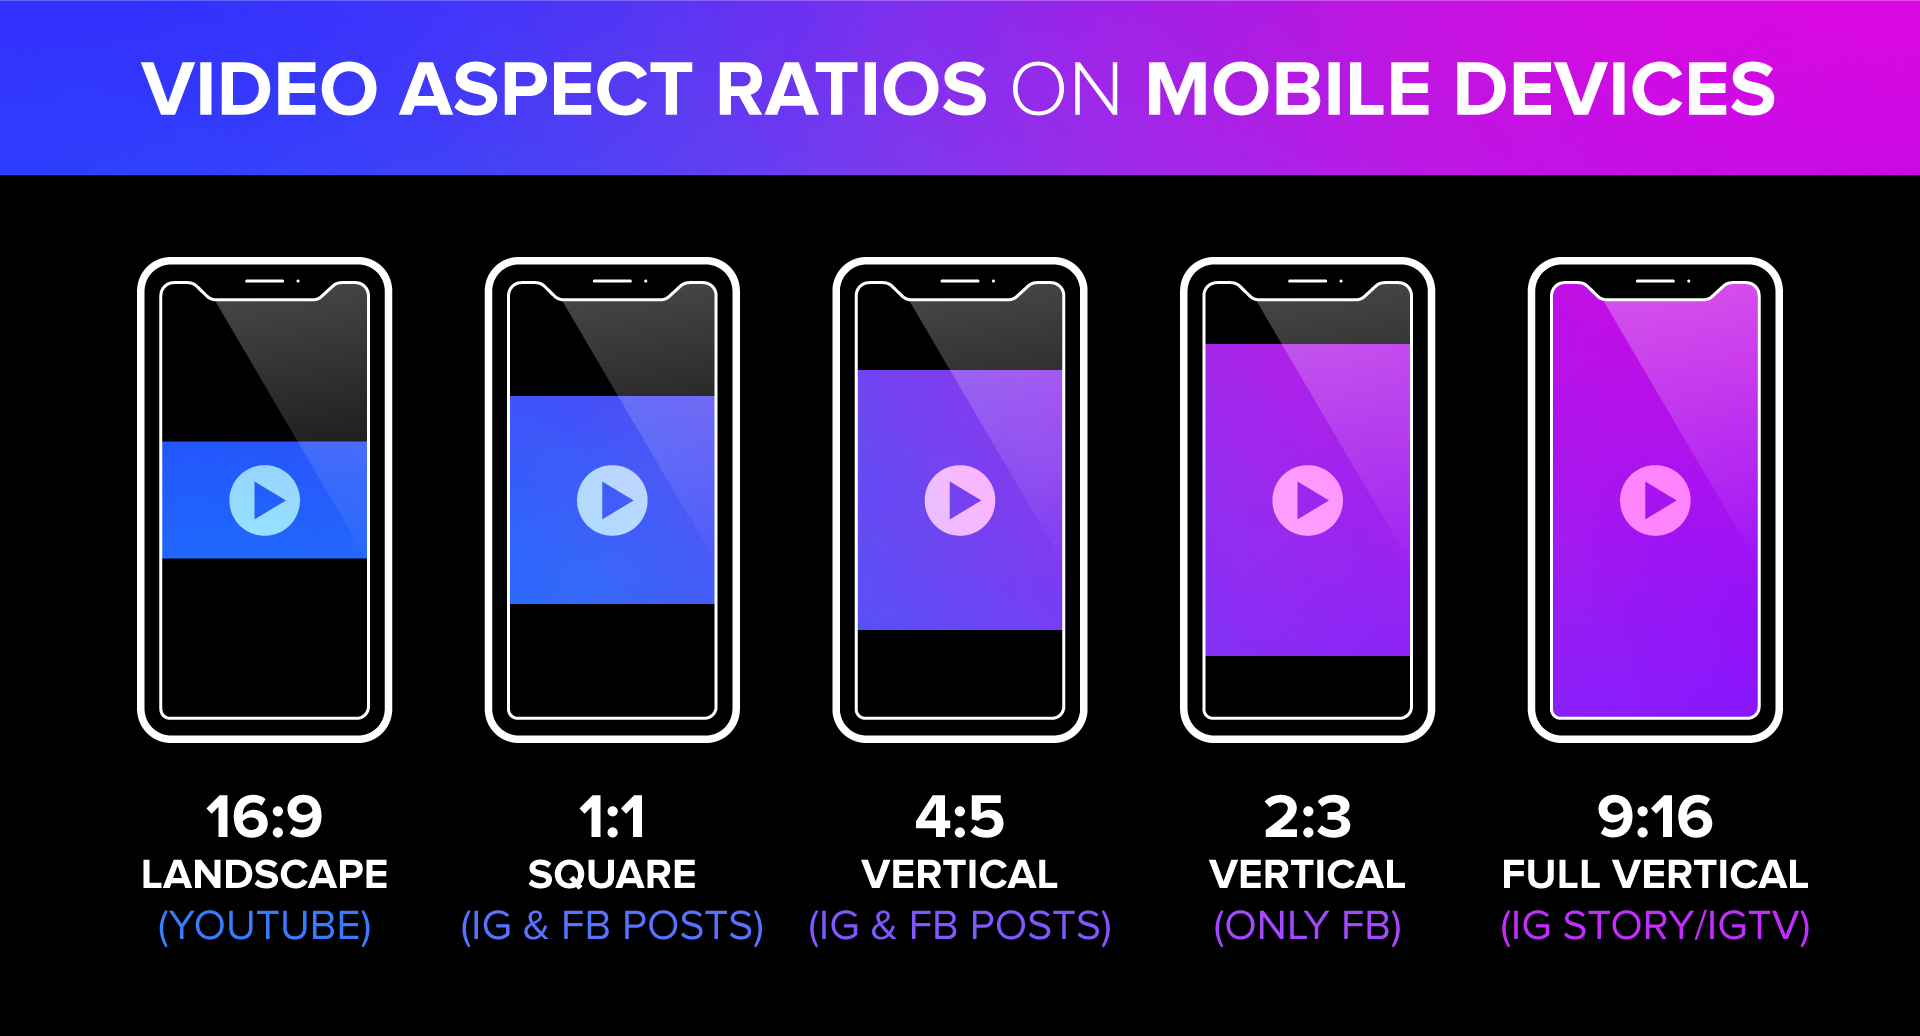 Infographic of video aspect ratios on mobile devices. Include 16:9 landscape for YouTube, 1:1 square for Instagram and Facebook, 4:5 vertical for Instagram and Facebook, 2:3 vertical for Facebook, and 9:16 full vertical for Instagram Story and IGTV